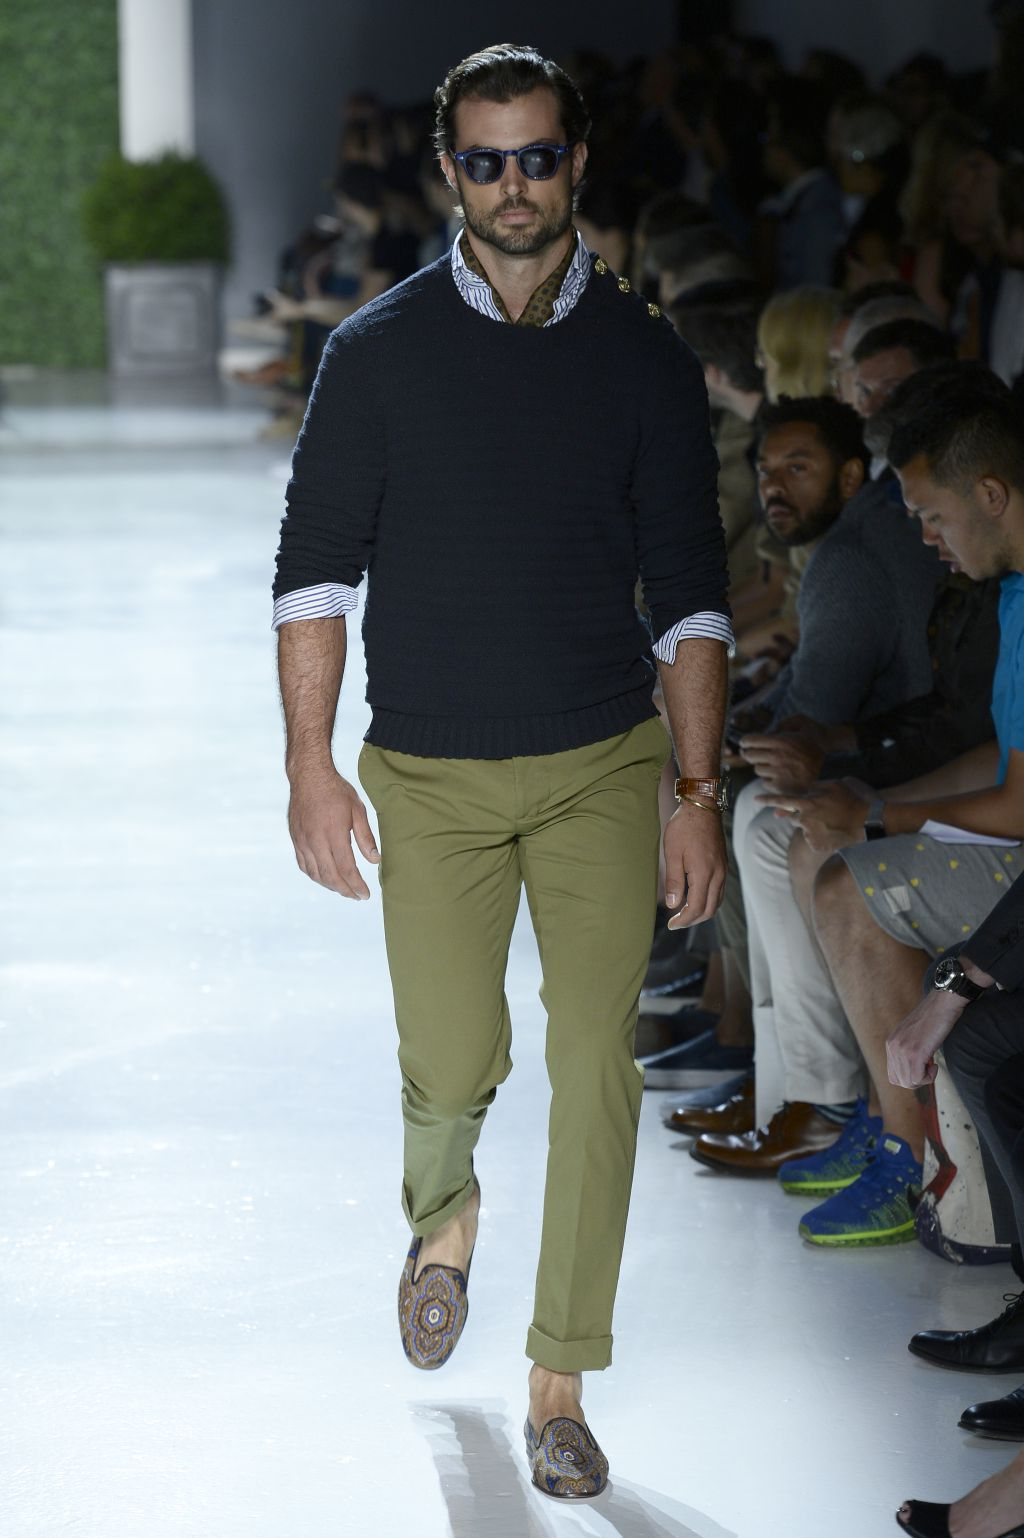 NEW YORK, NY - JULY 15:  A model walks at Michael Bastian Runway at New York Fashion Week: Men's S/S 2016 at Skylight Clarkson Sq on July 15, 2015 in New York City.  (Photo by Fernanda Calfat/Getty Images)